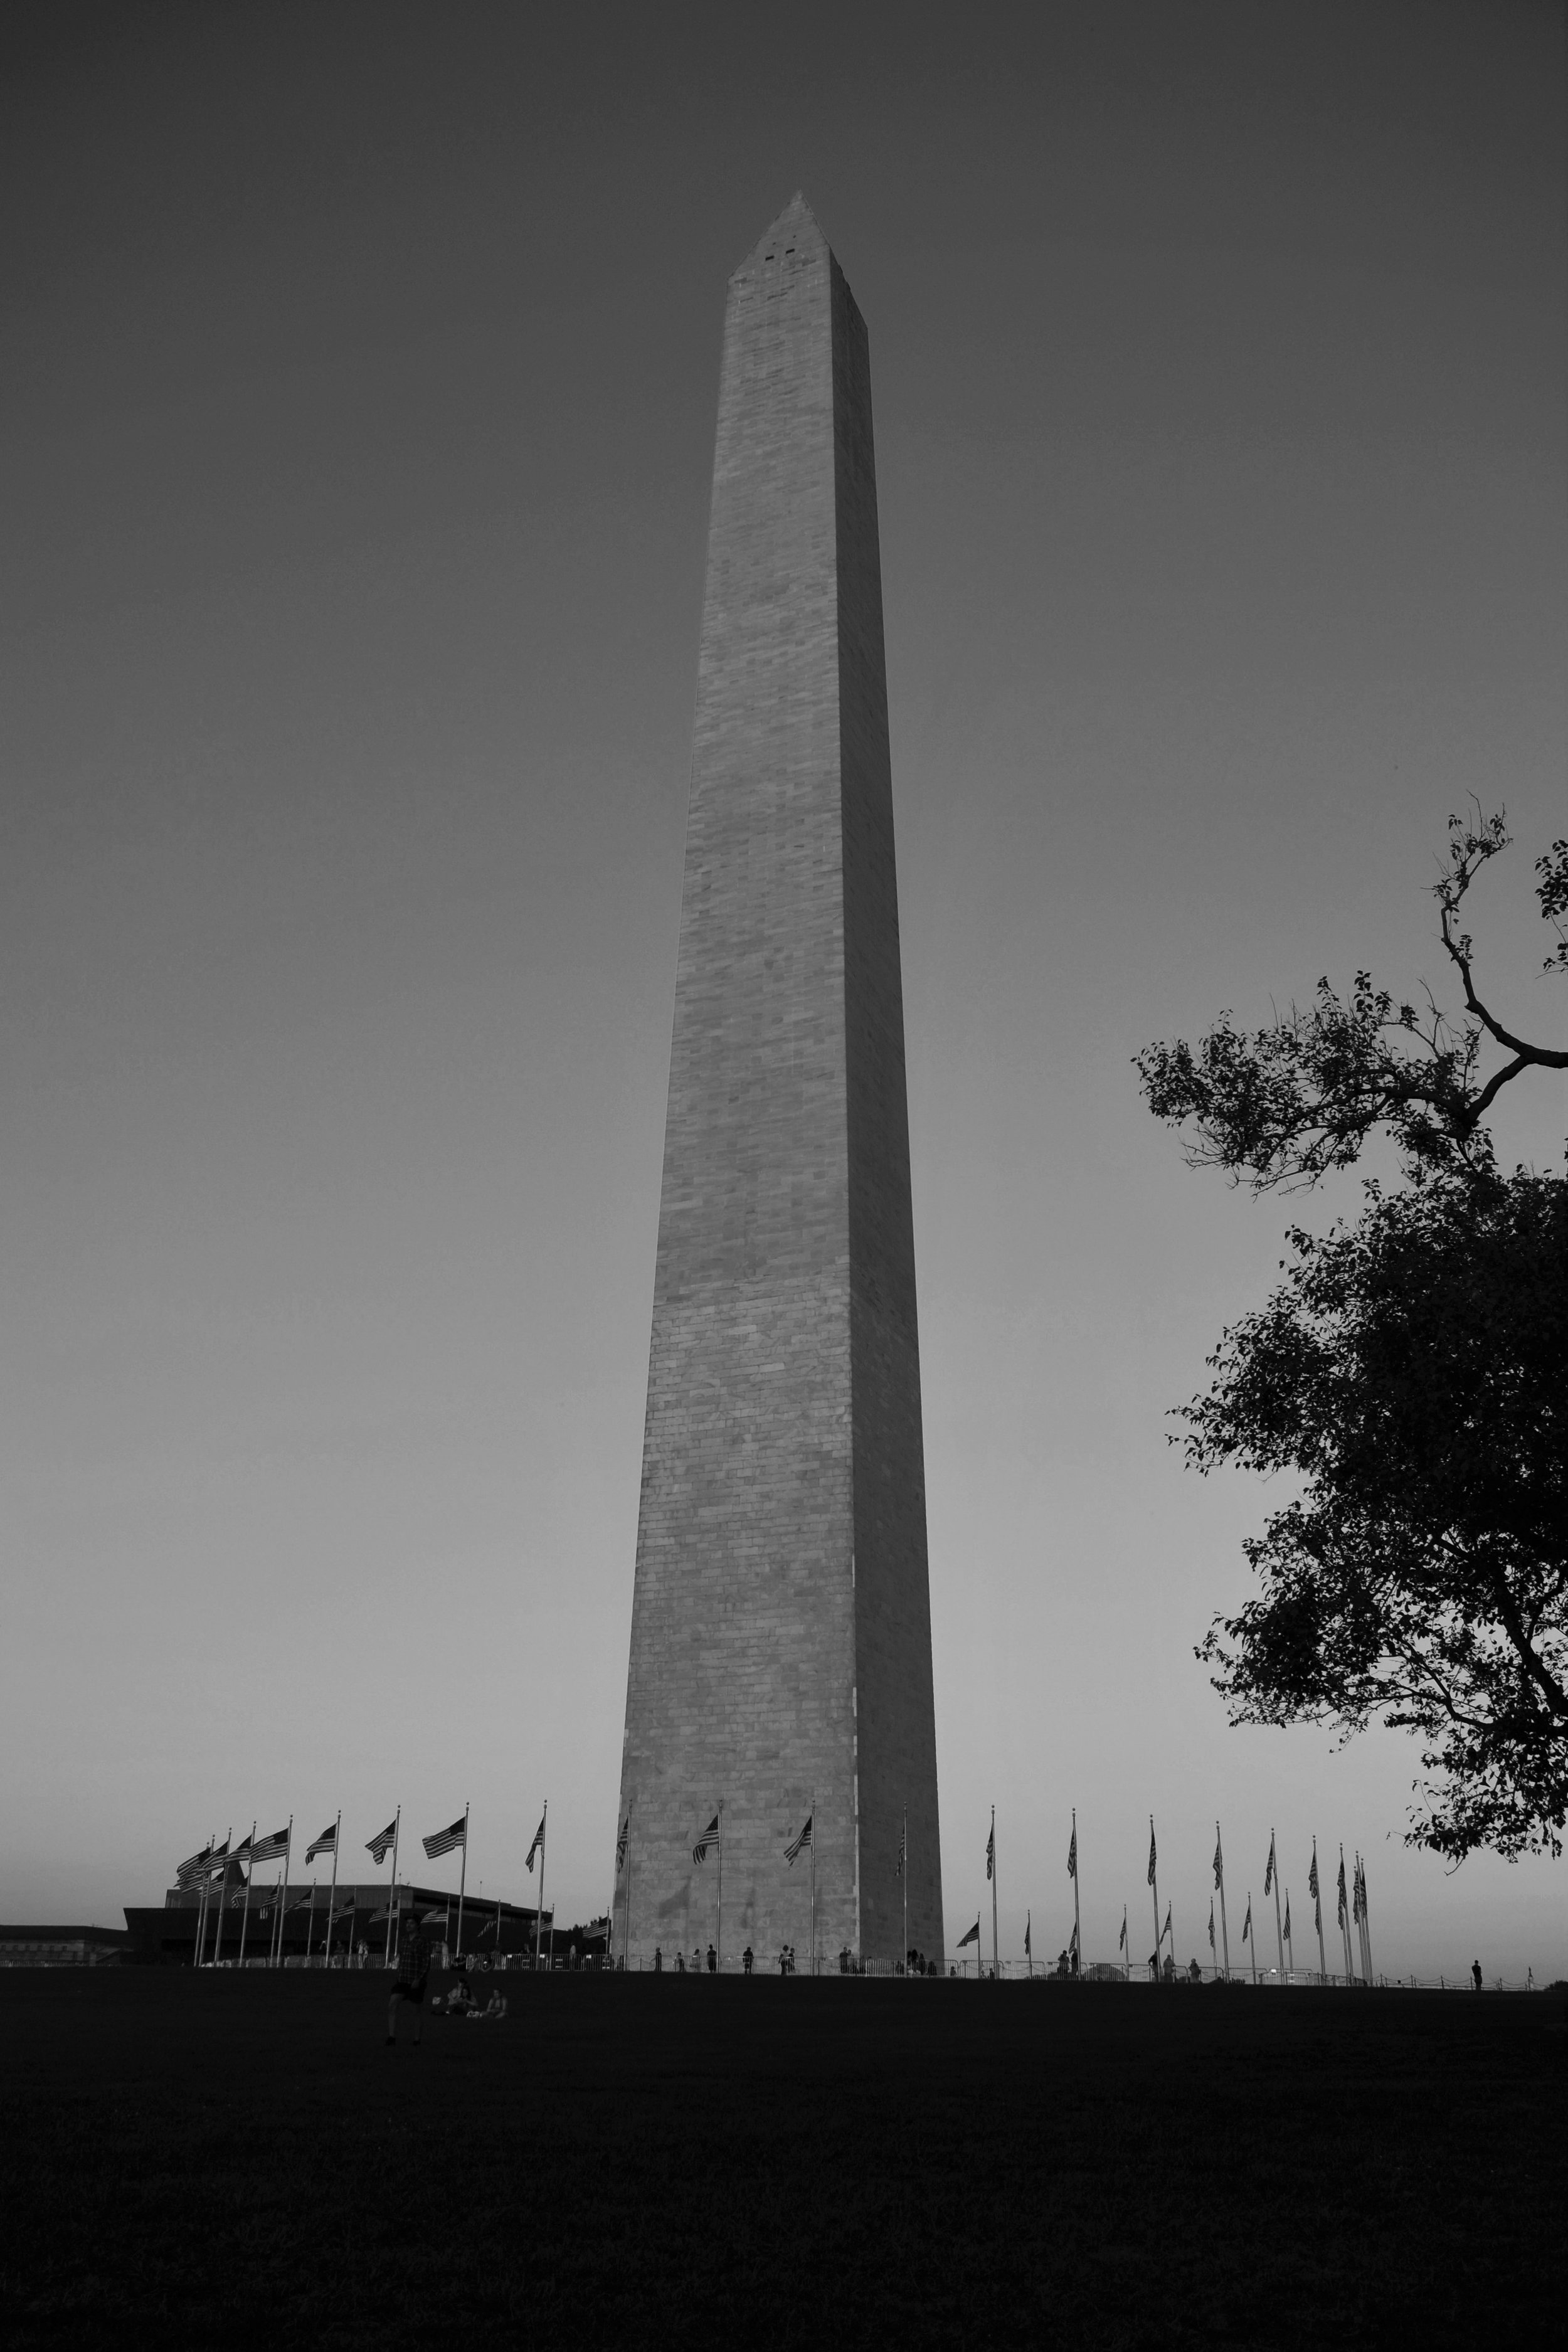 The Washington Erection.